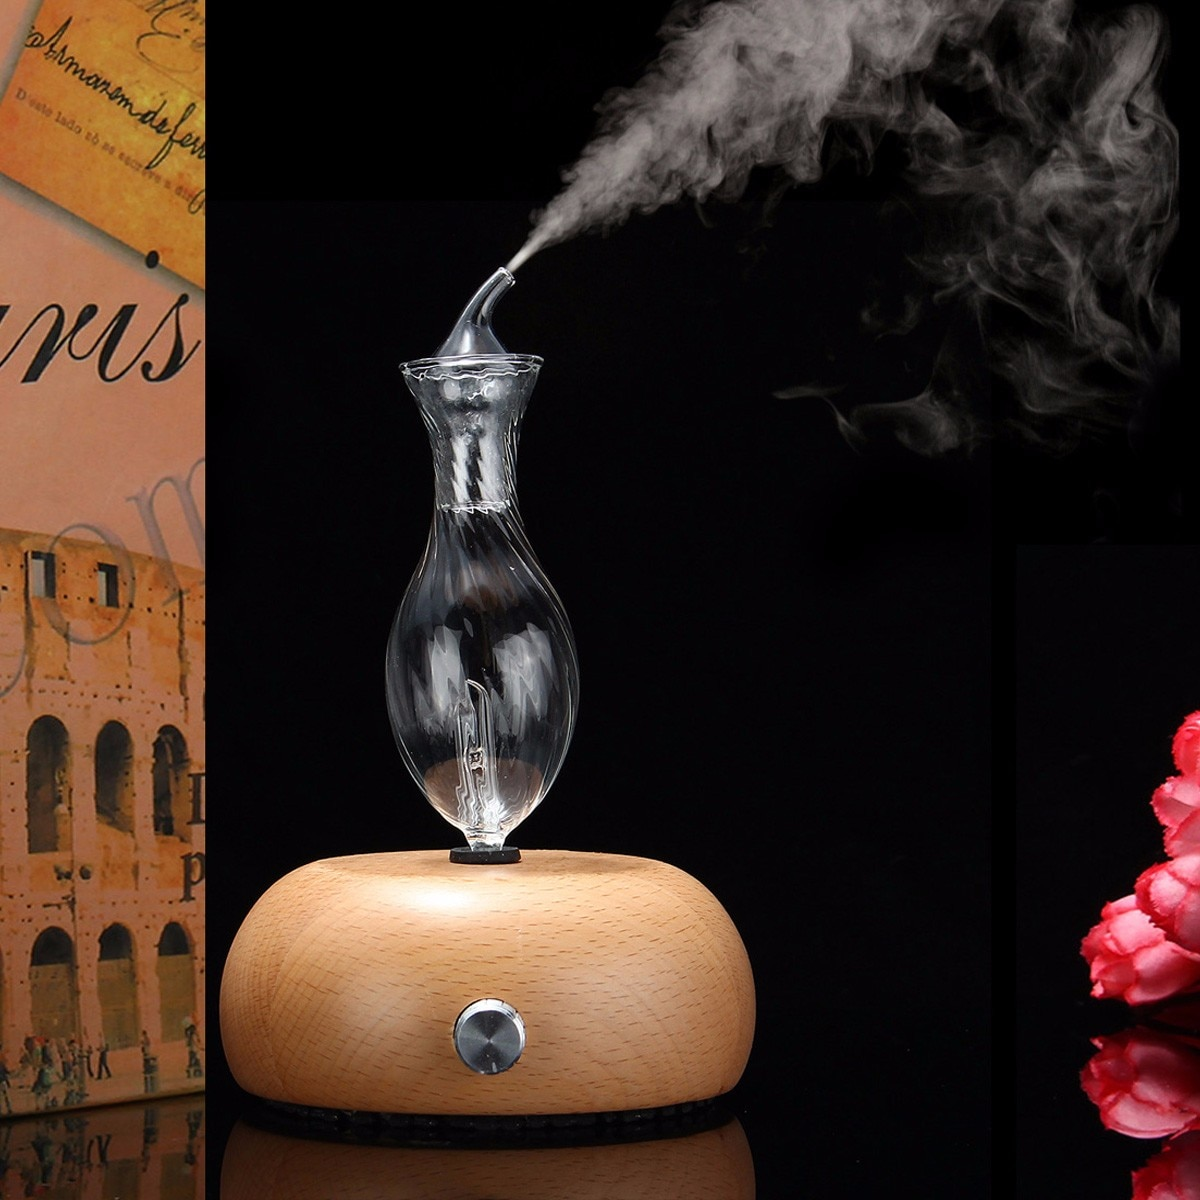 Wooden-7-Color-Aromatherapy-Essential-Oils-Diffuser-LED-Light-Air-for-Aroma-Nebulizer-Humidifier-Cool-Mist.jpg